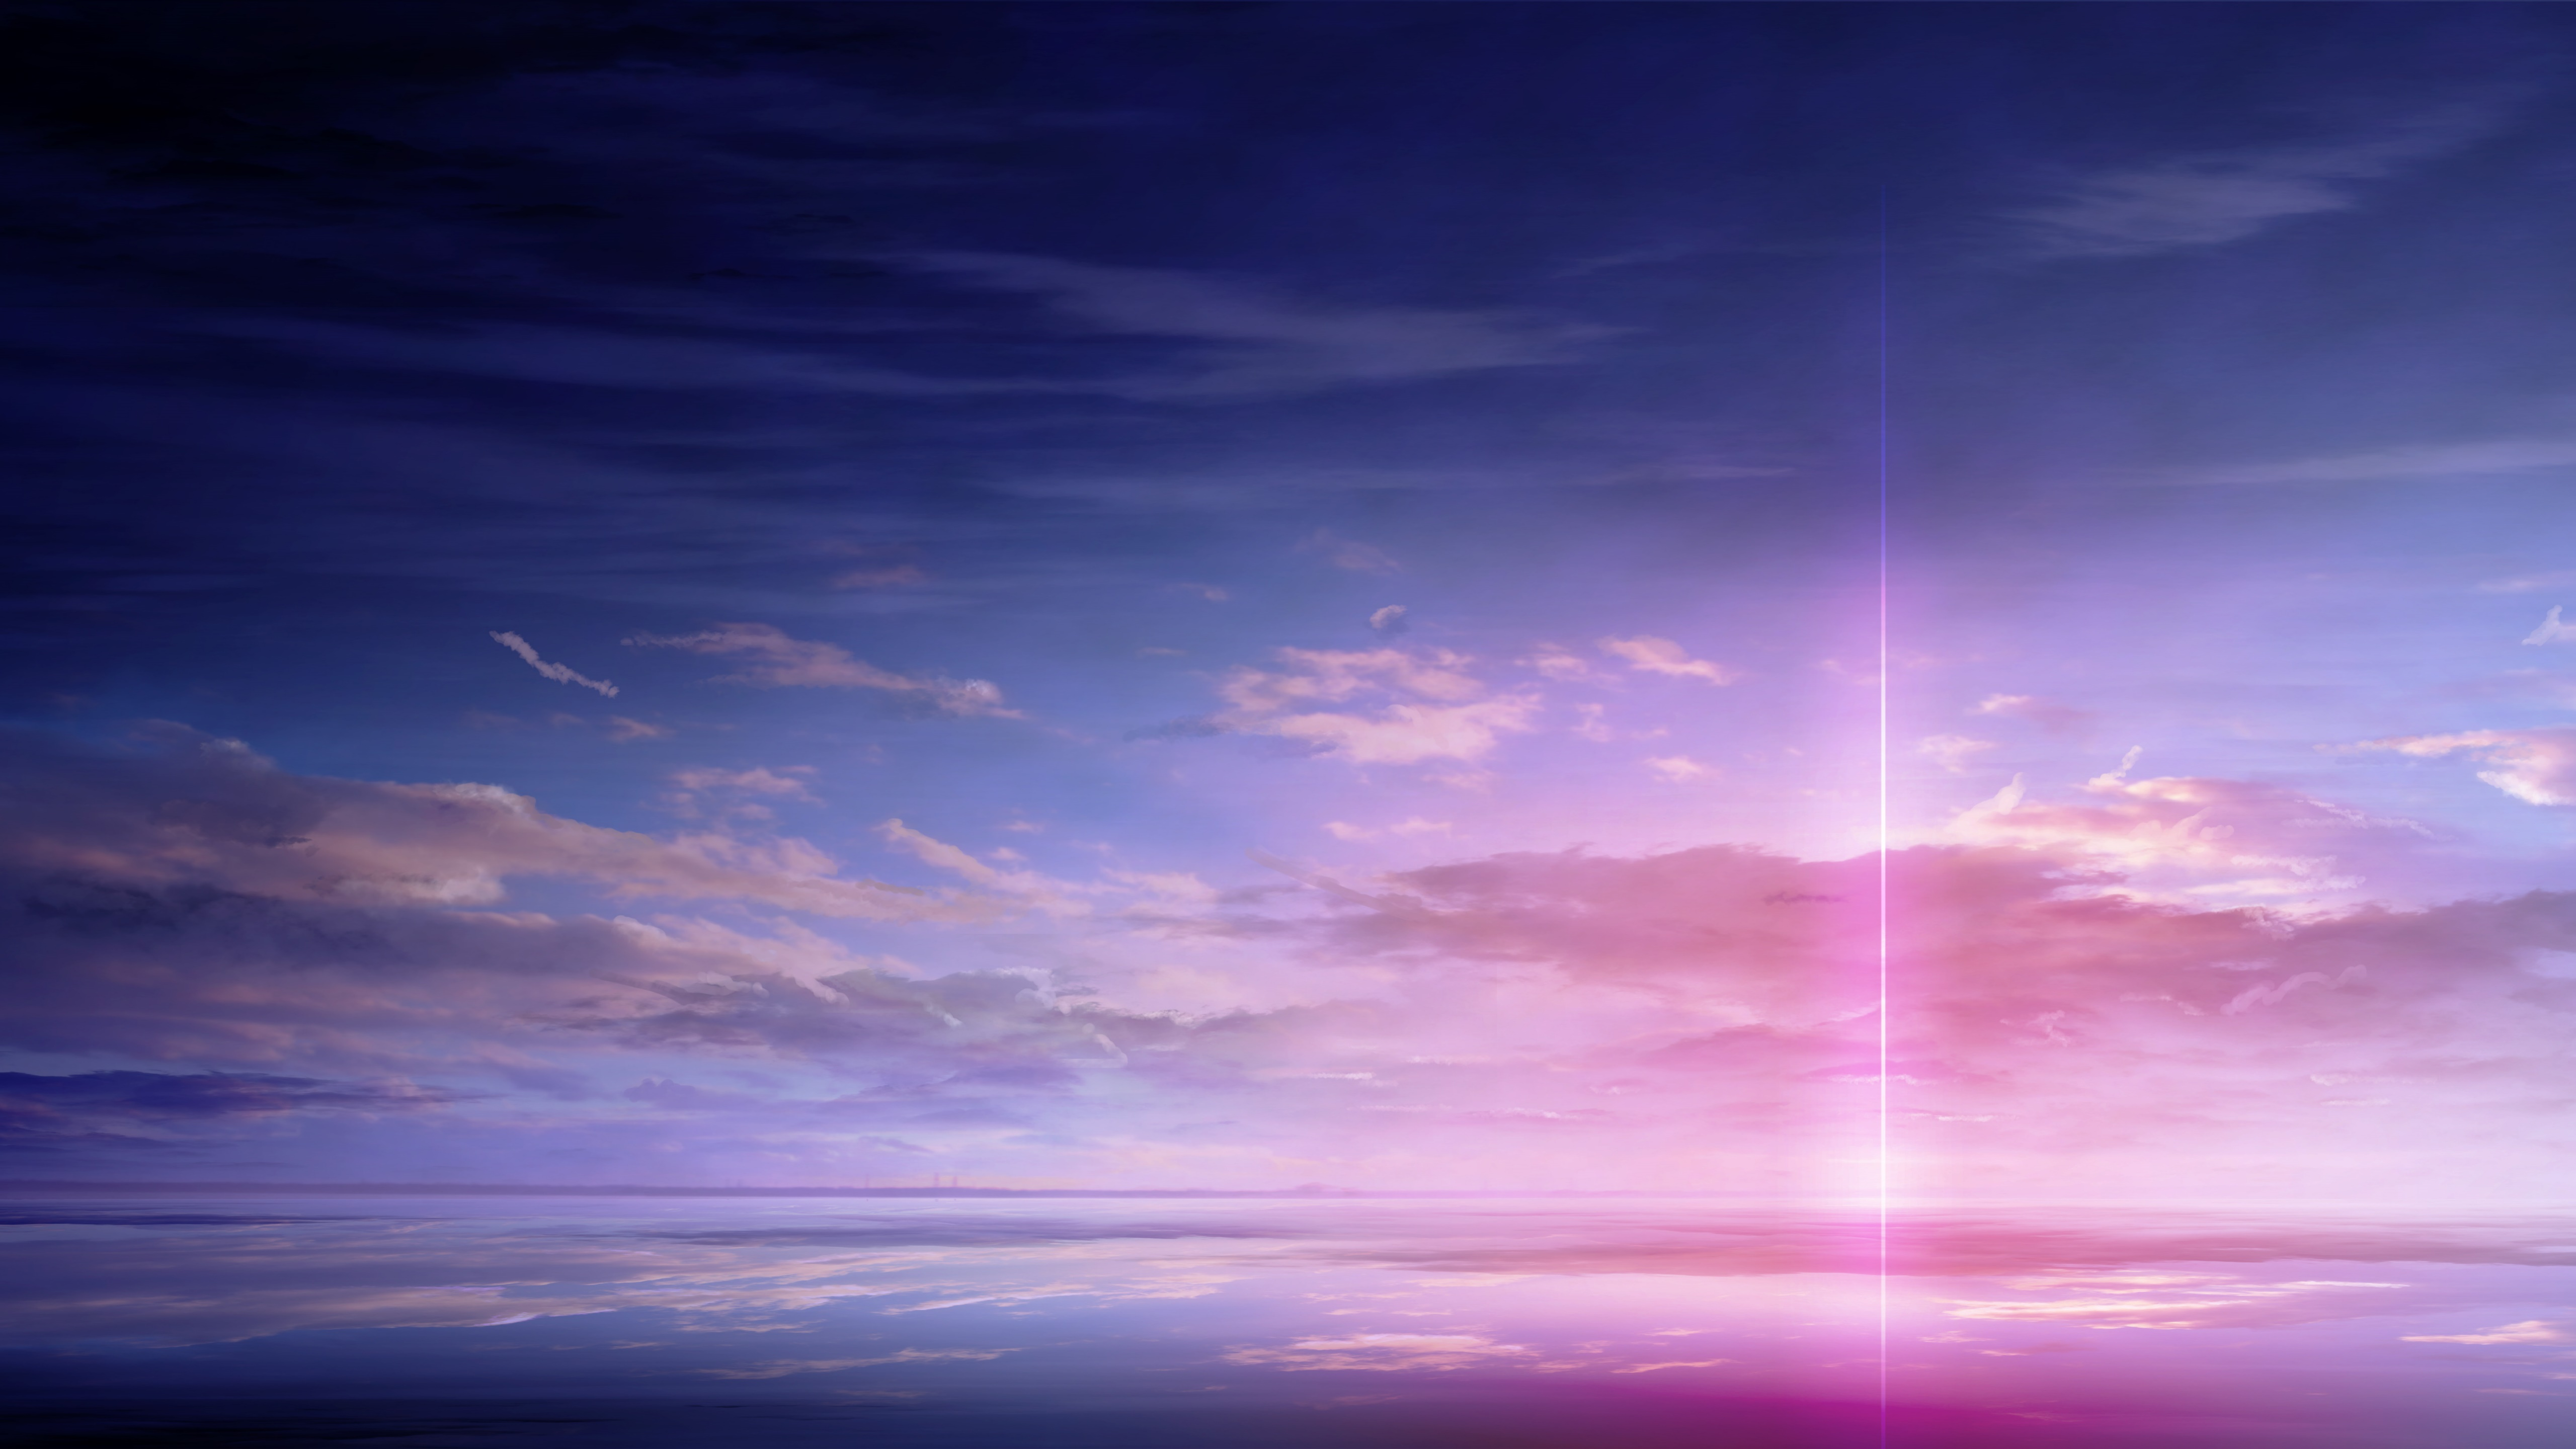 Pink Anime Sky 5K UltraHD Wallpaper - backiee - Free Ultra HD